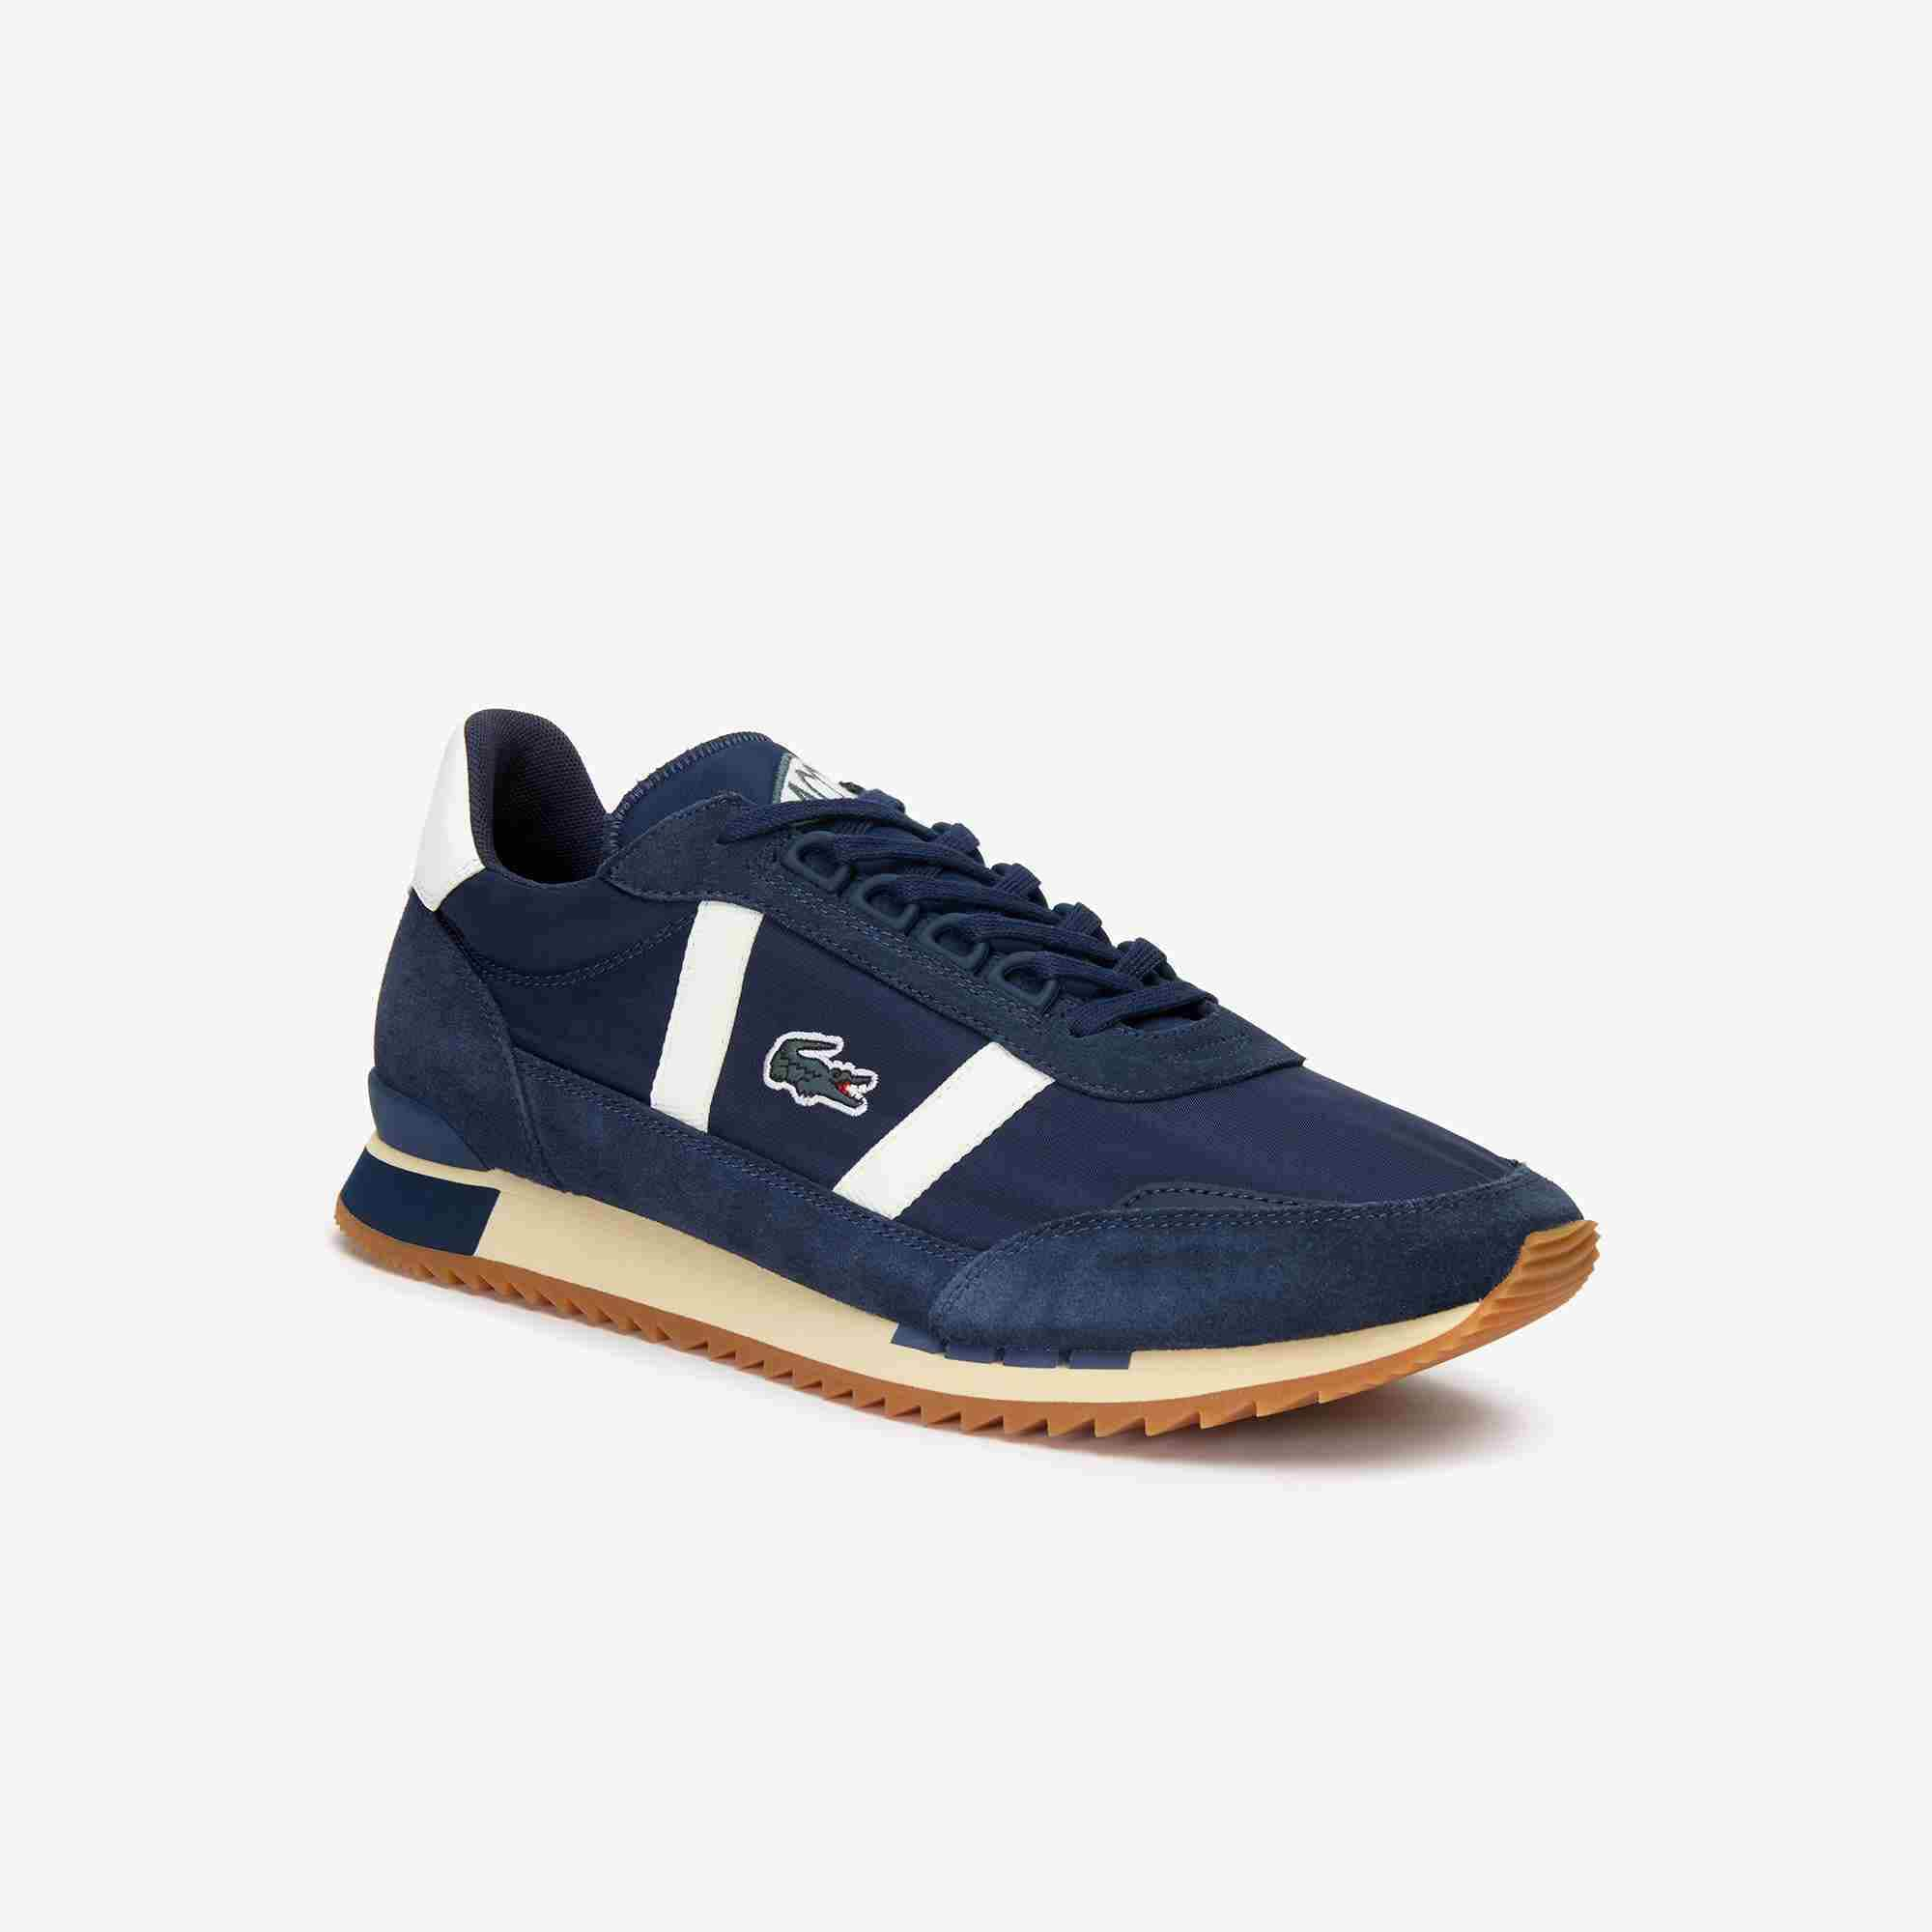 d7549bf2d6b Lacoste shoes for men: Sneakers, Trainers, Boots   LACOSTE